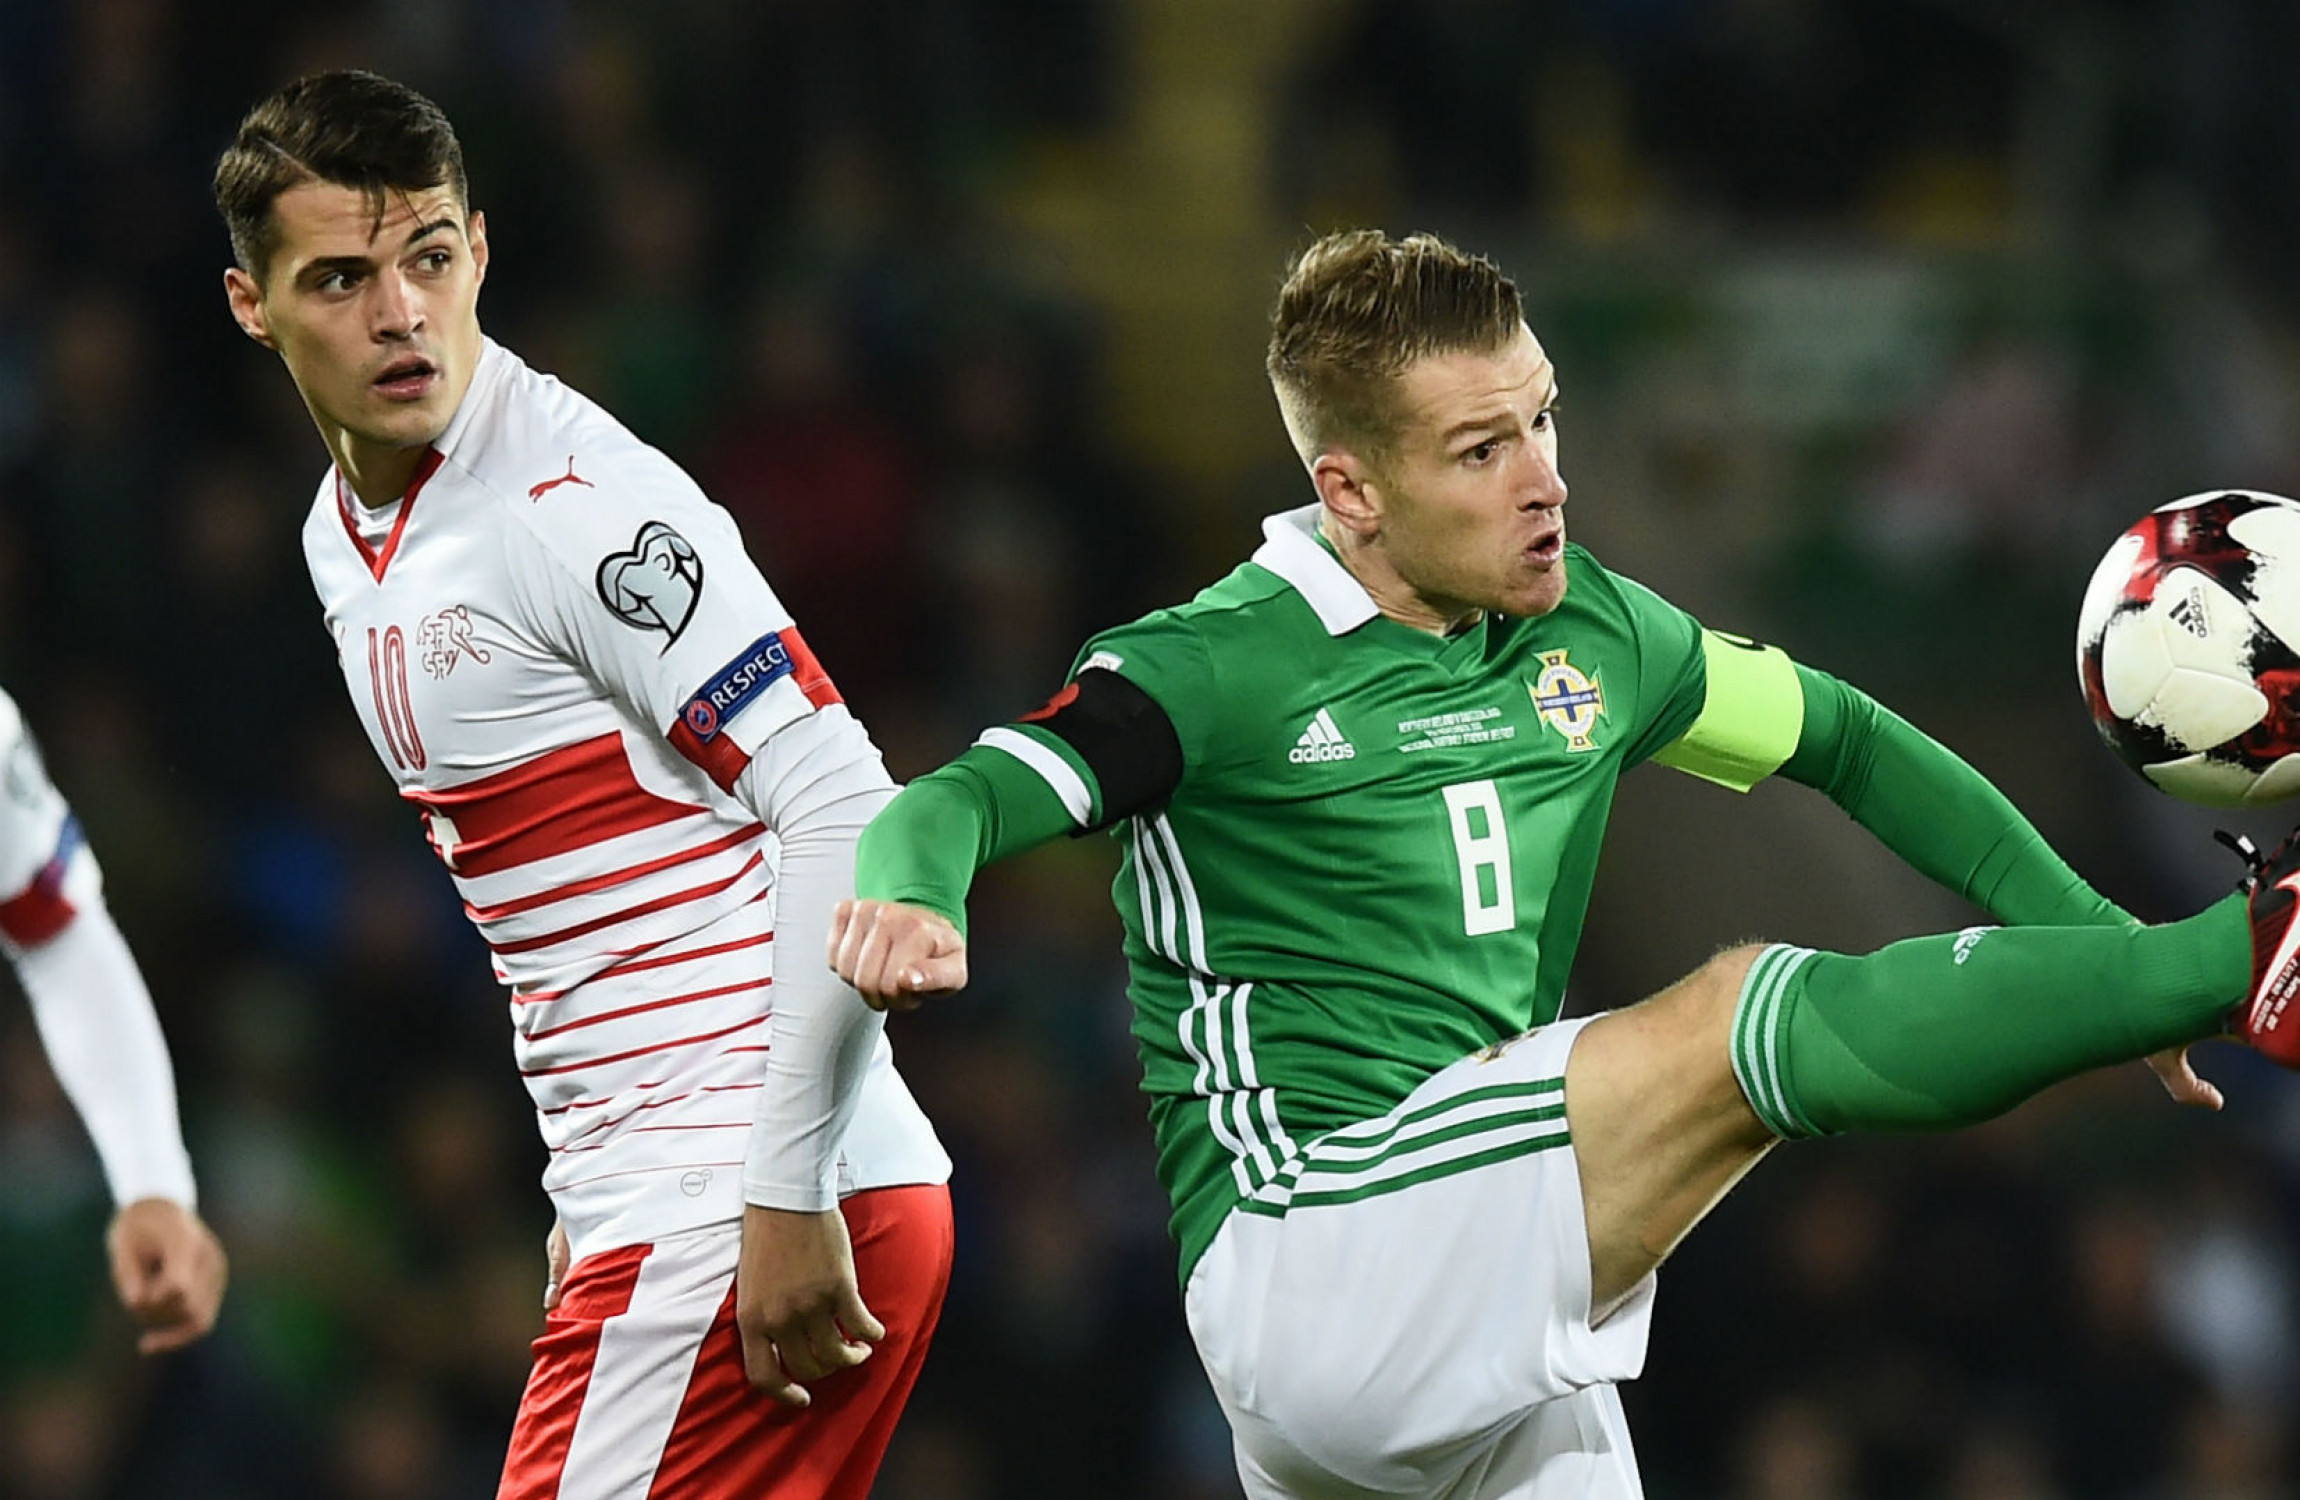 Southampton: Davis and Northern Ireland face make or break game